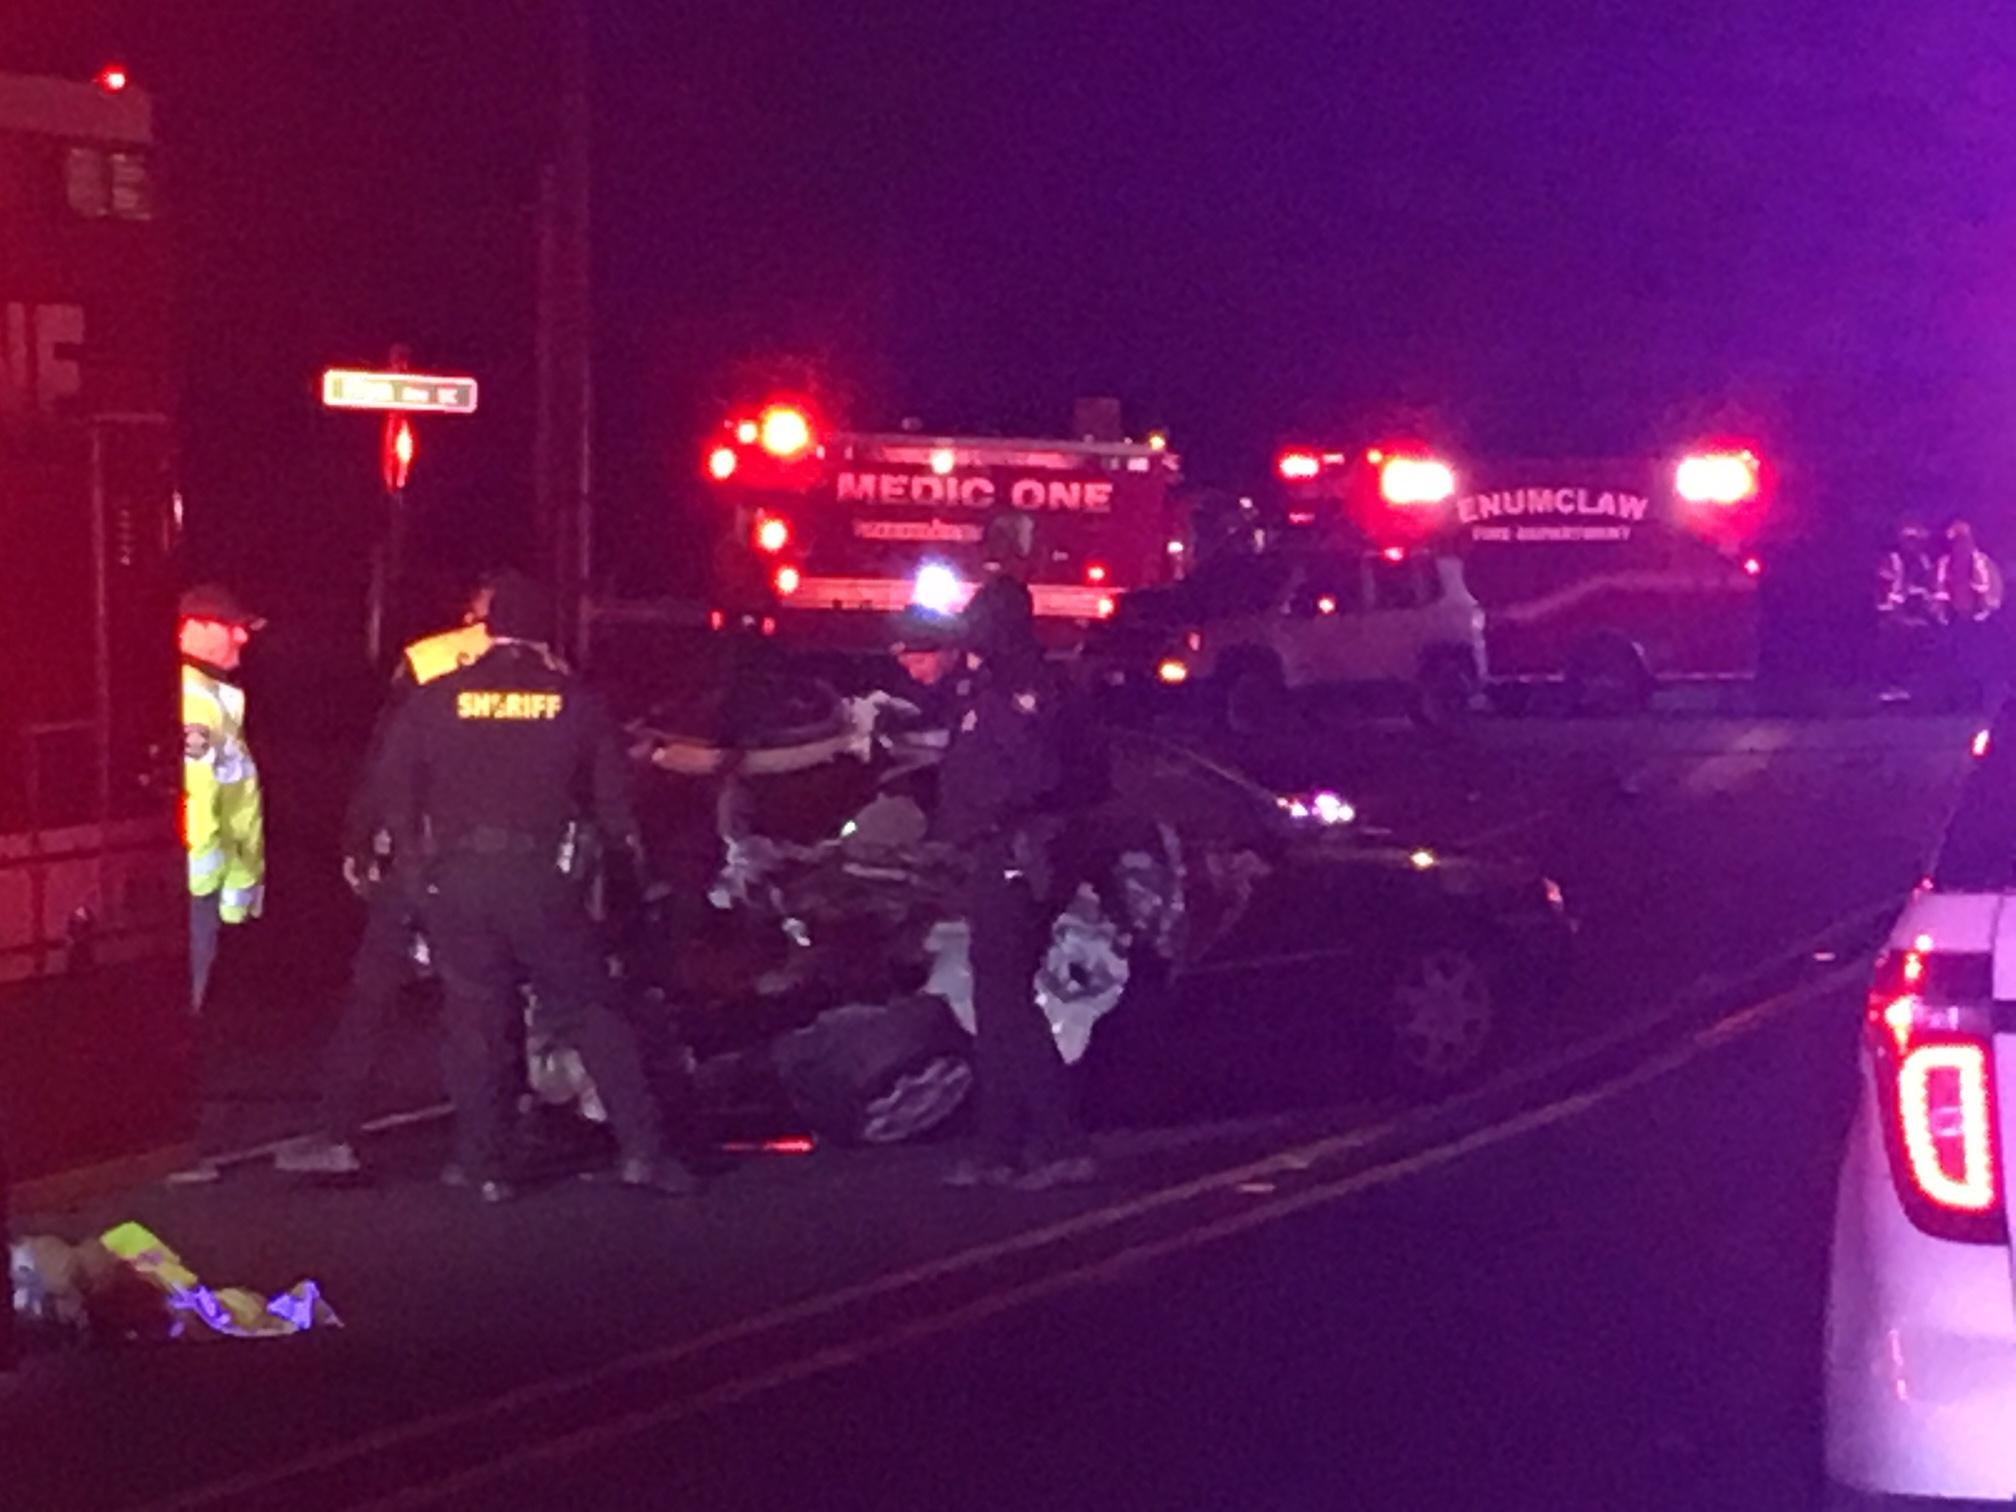 Two people were killed overnight near Enumclaw in a two-vehicle crash on State Route 164. (Photo credit: Steven Miller)